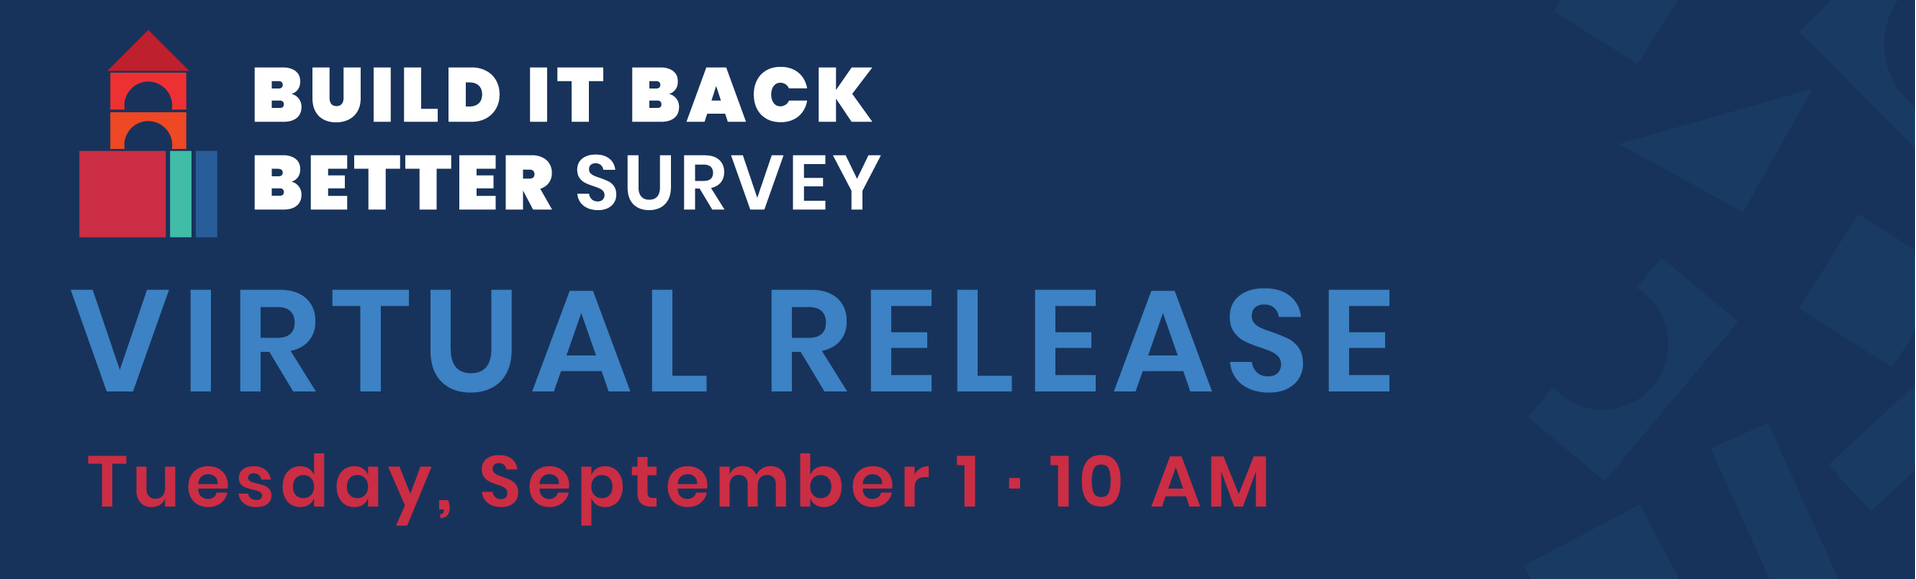 Text on blue background: Build it Back Better Survey / Virtual Release / Tuesday, September 1 - 10 AM